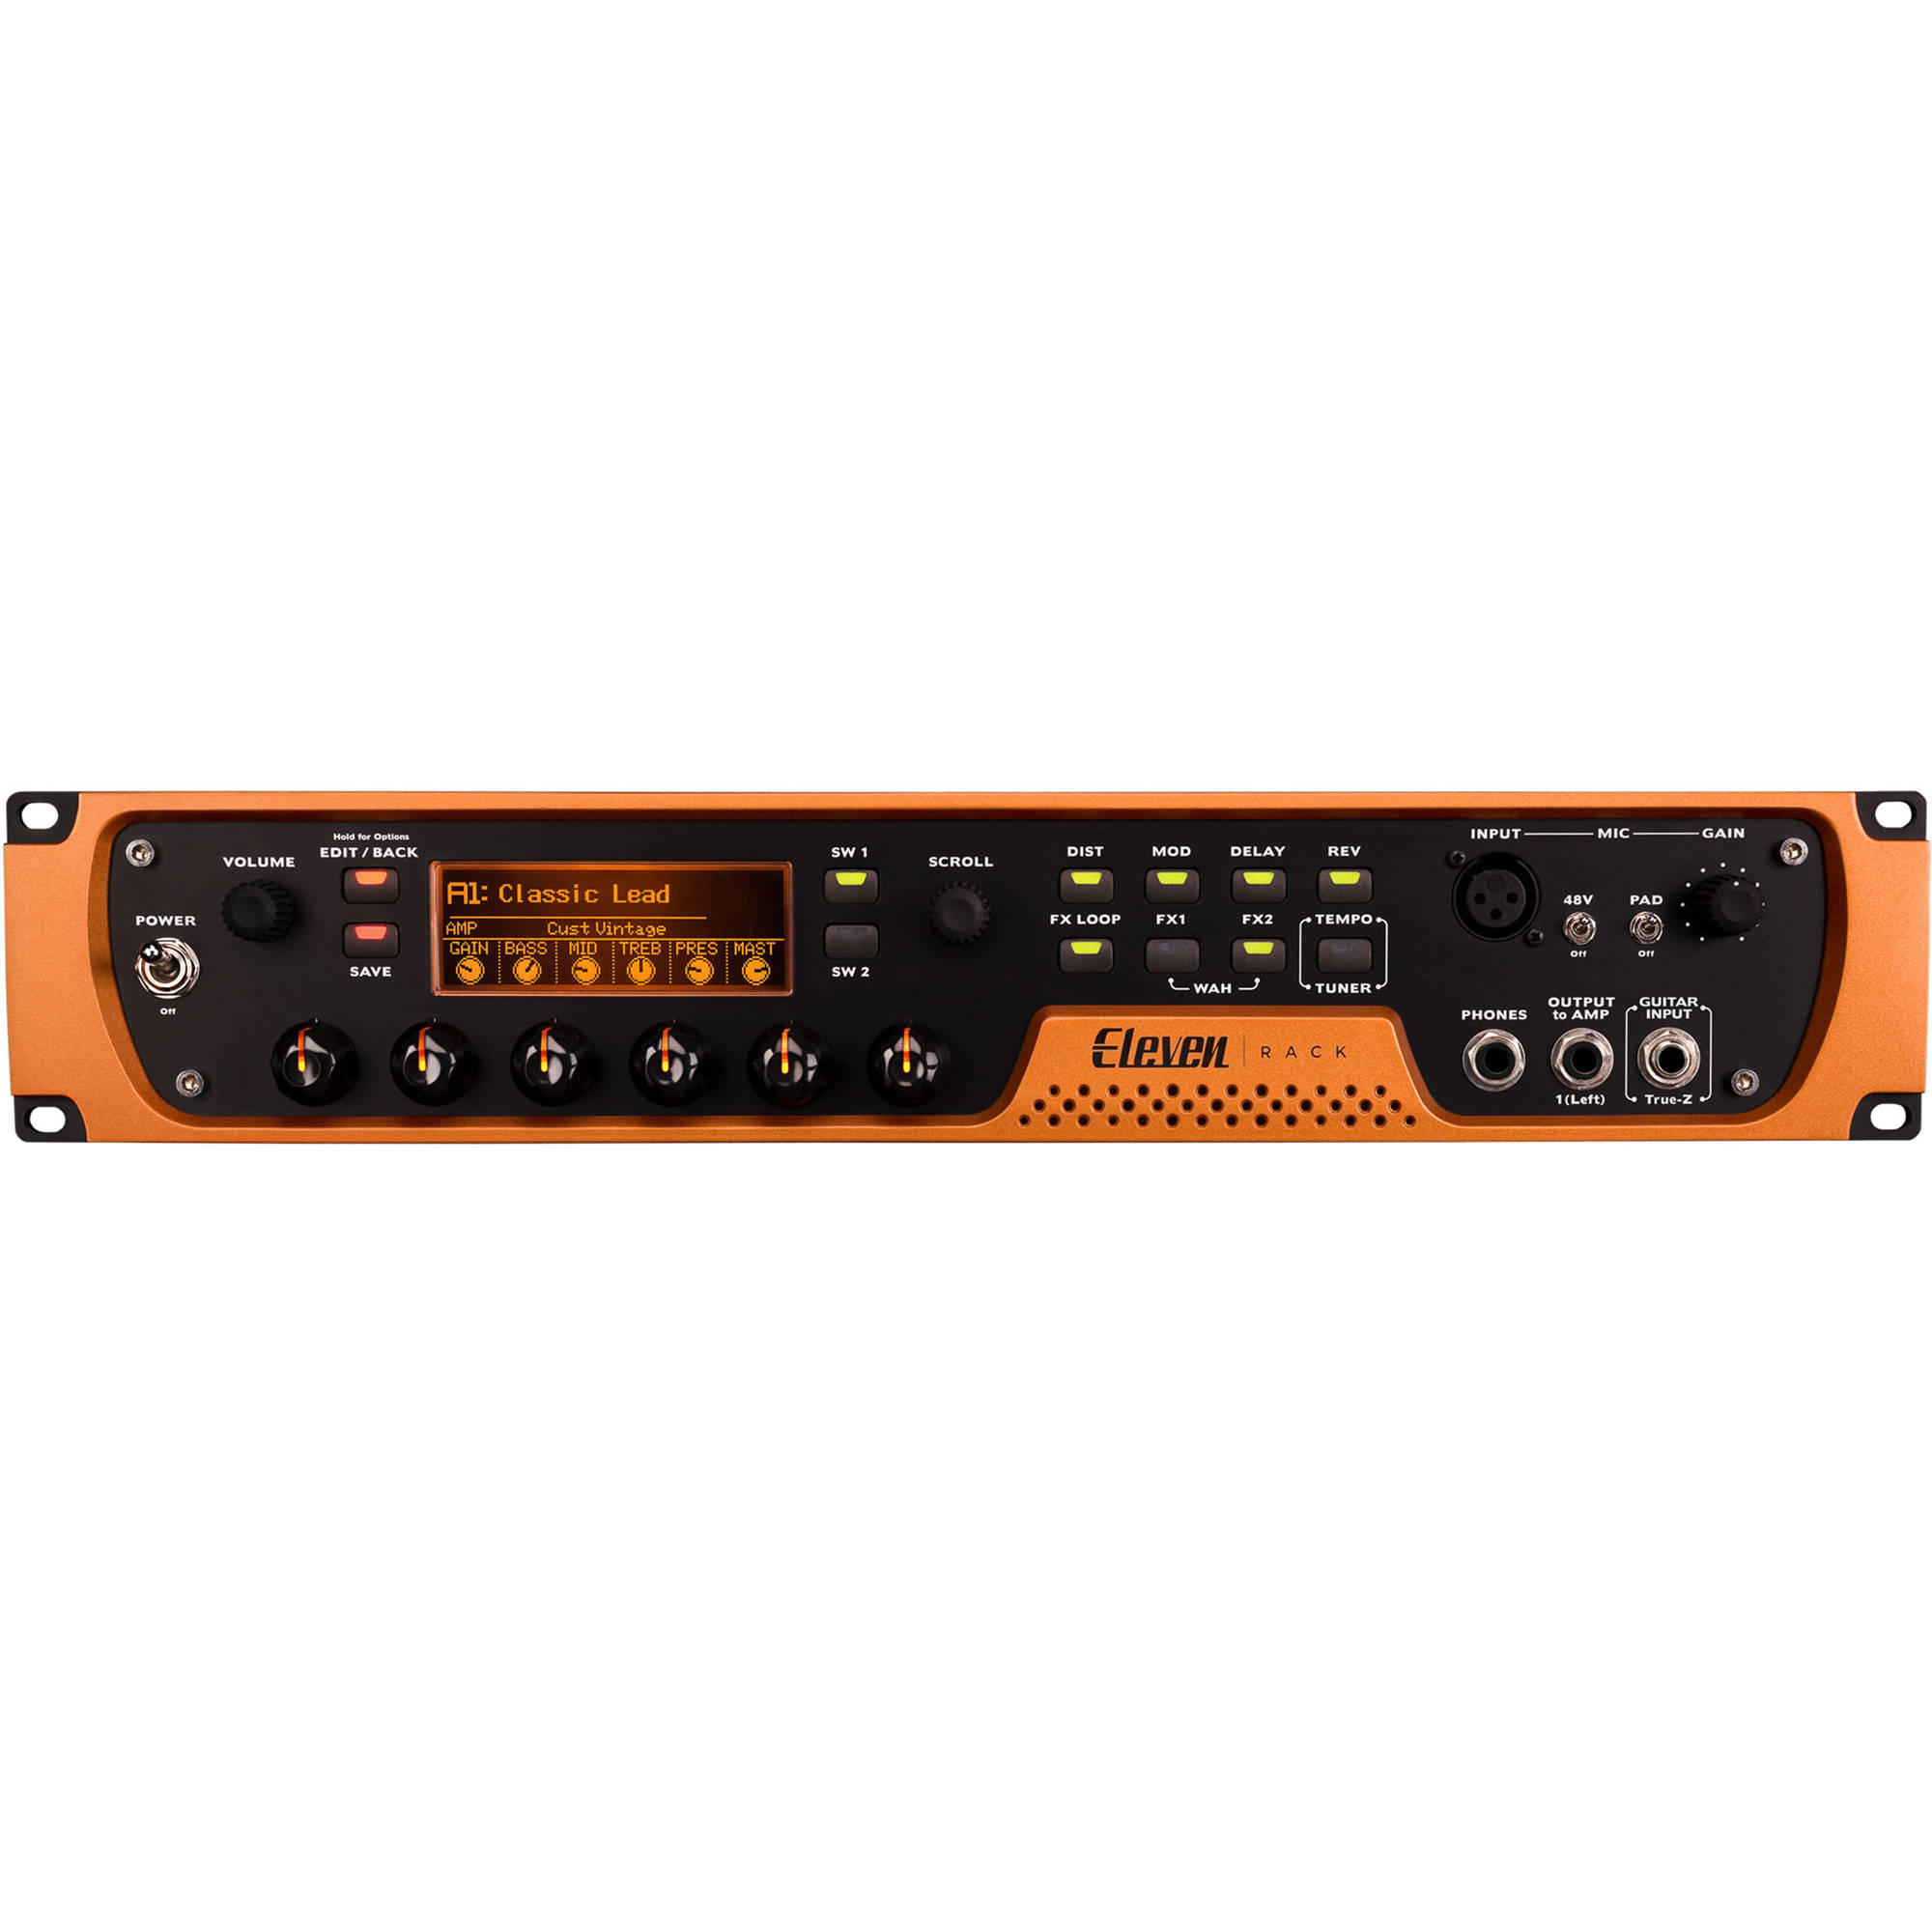 Avid Pro Tools   Eleven Rack - Recording and Guitar Amp Emulation System  with 1-Year Pro Tools License